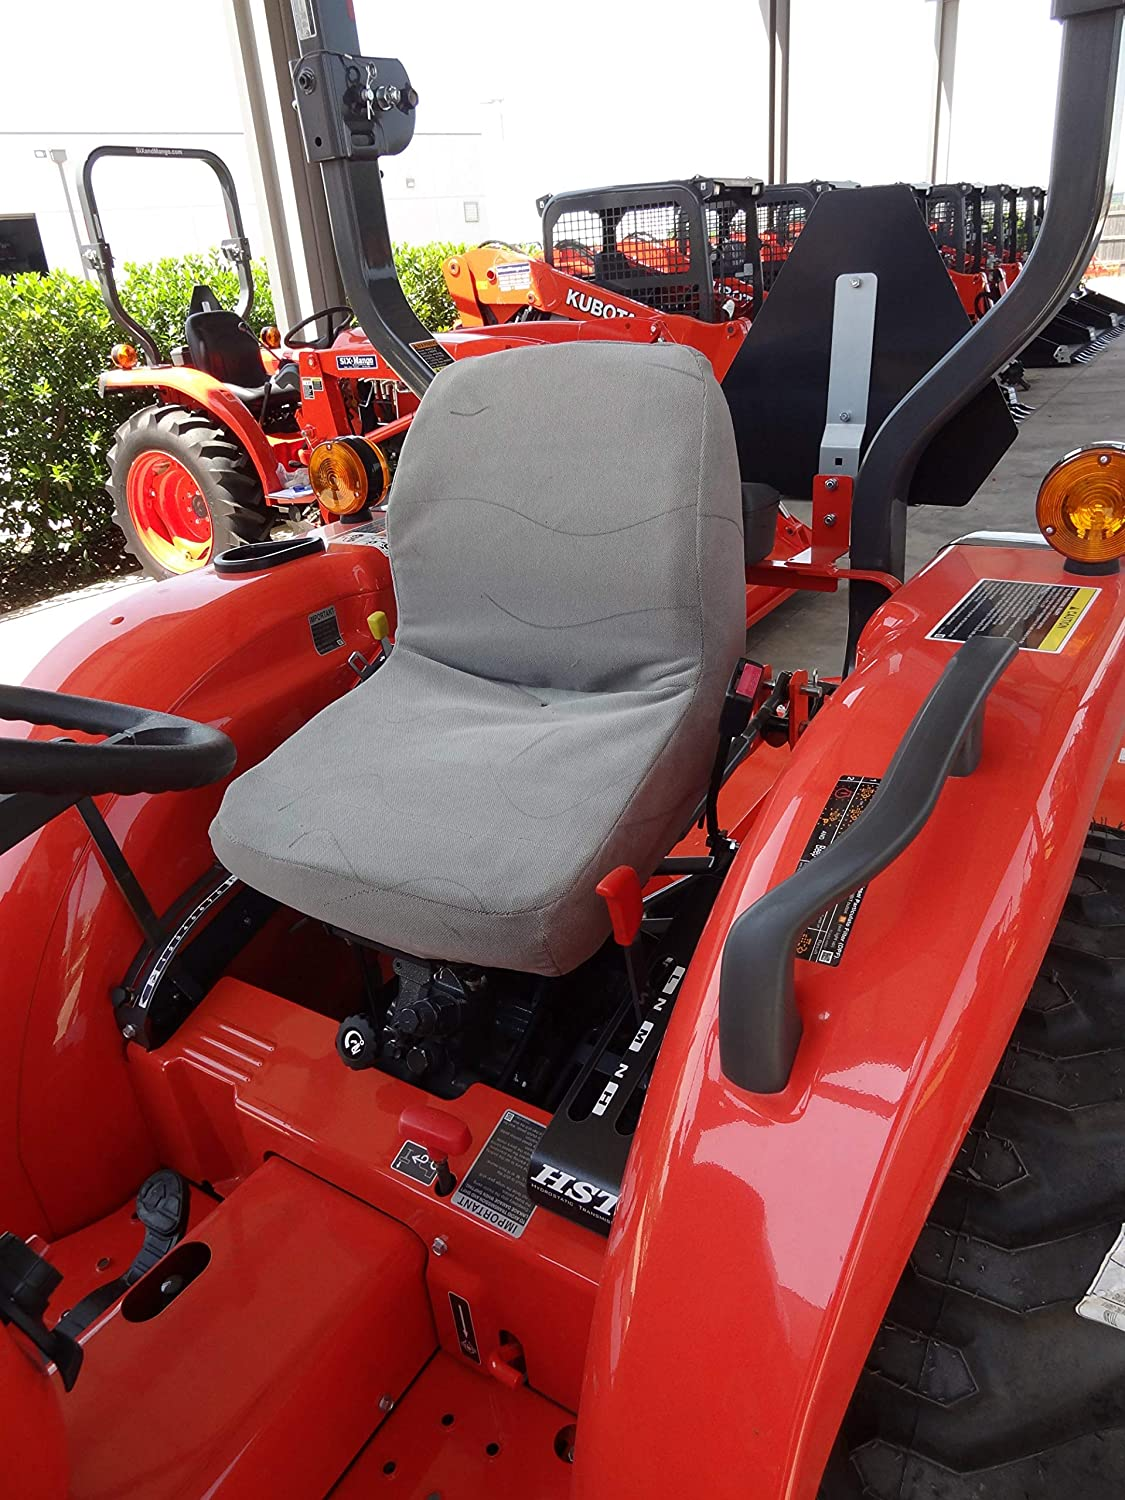 Kubota L3901 Tractor Review: The Power and Versatility You